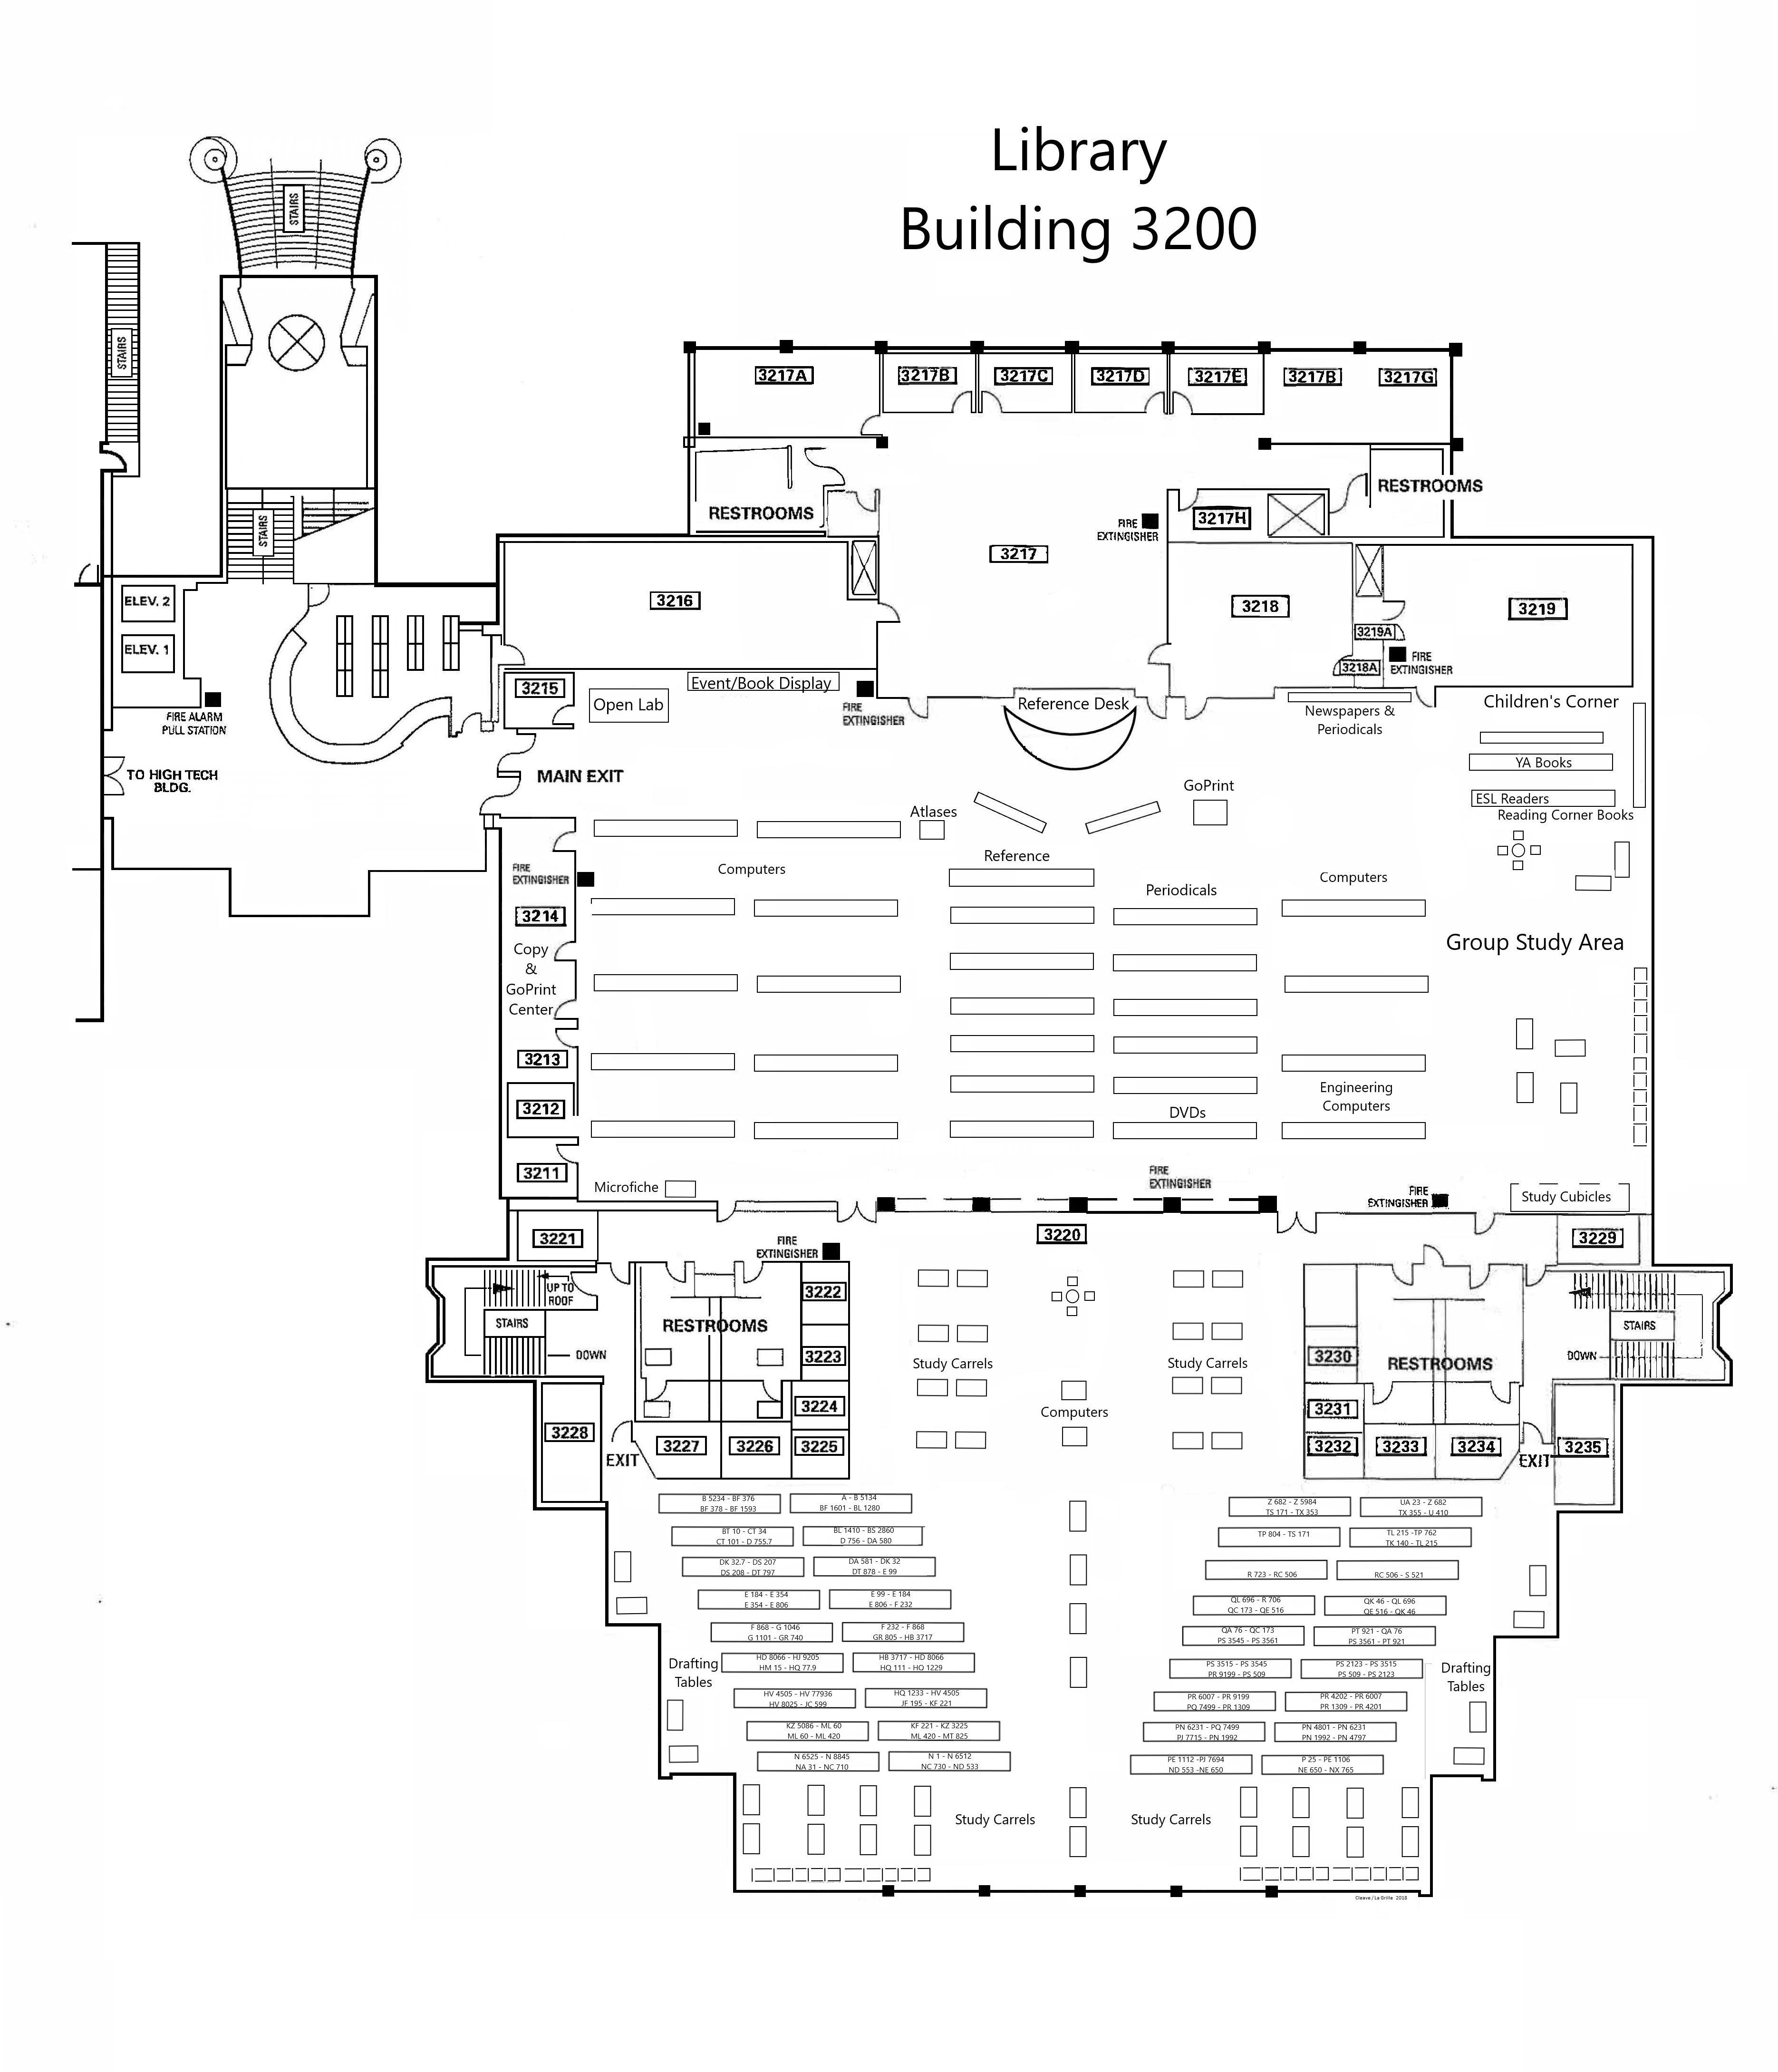 slo library map